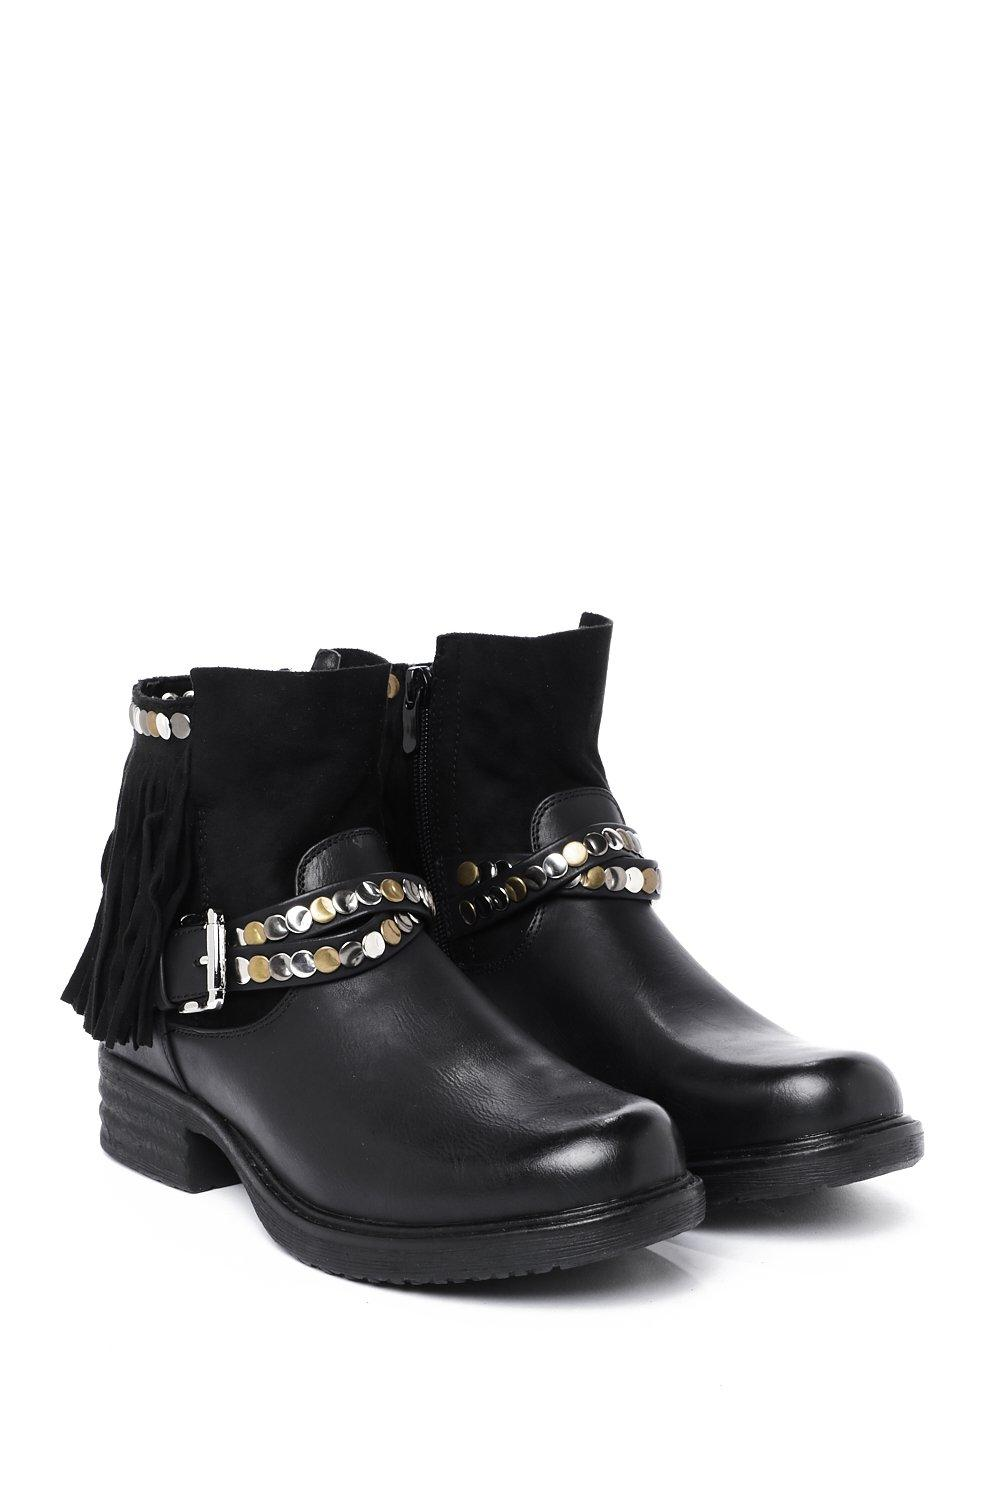 05c4c093709 Let s Hang Out Faux Leather Boot